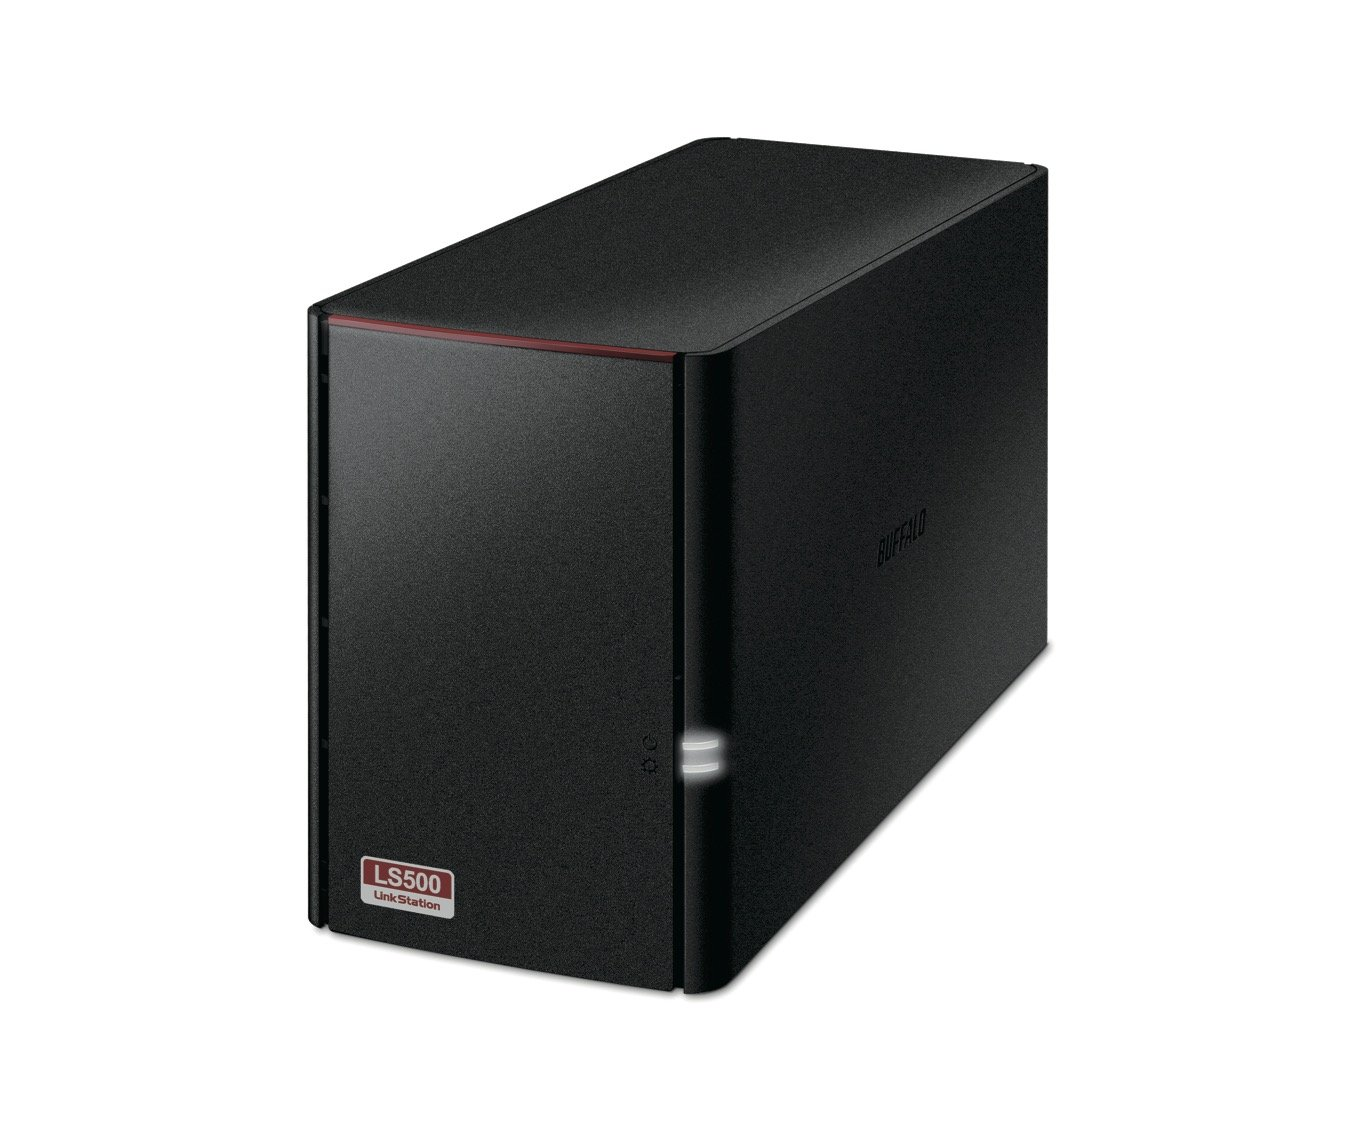 2 x 2TB LinkStation 520D 2 Bay Desktop NAS Buffalo LS520D0402-EU 4TB